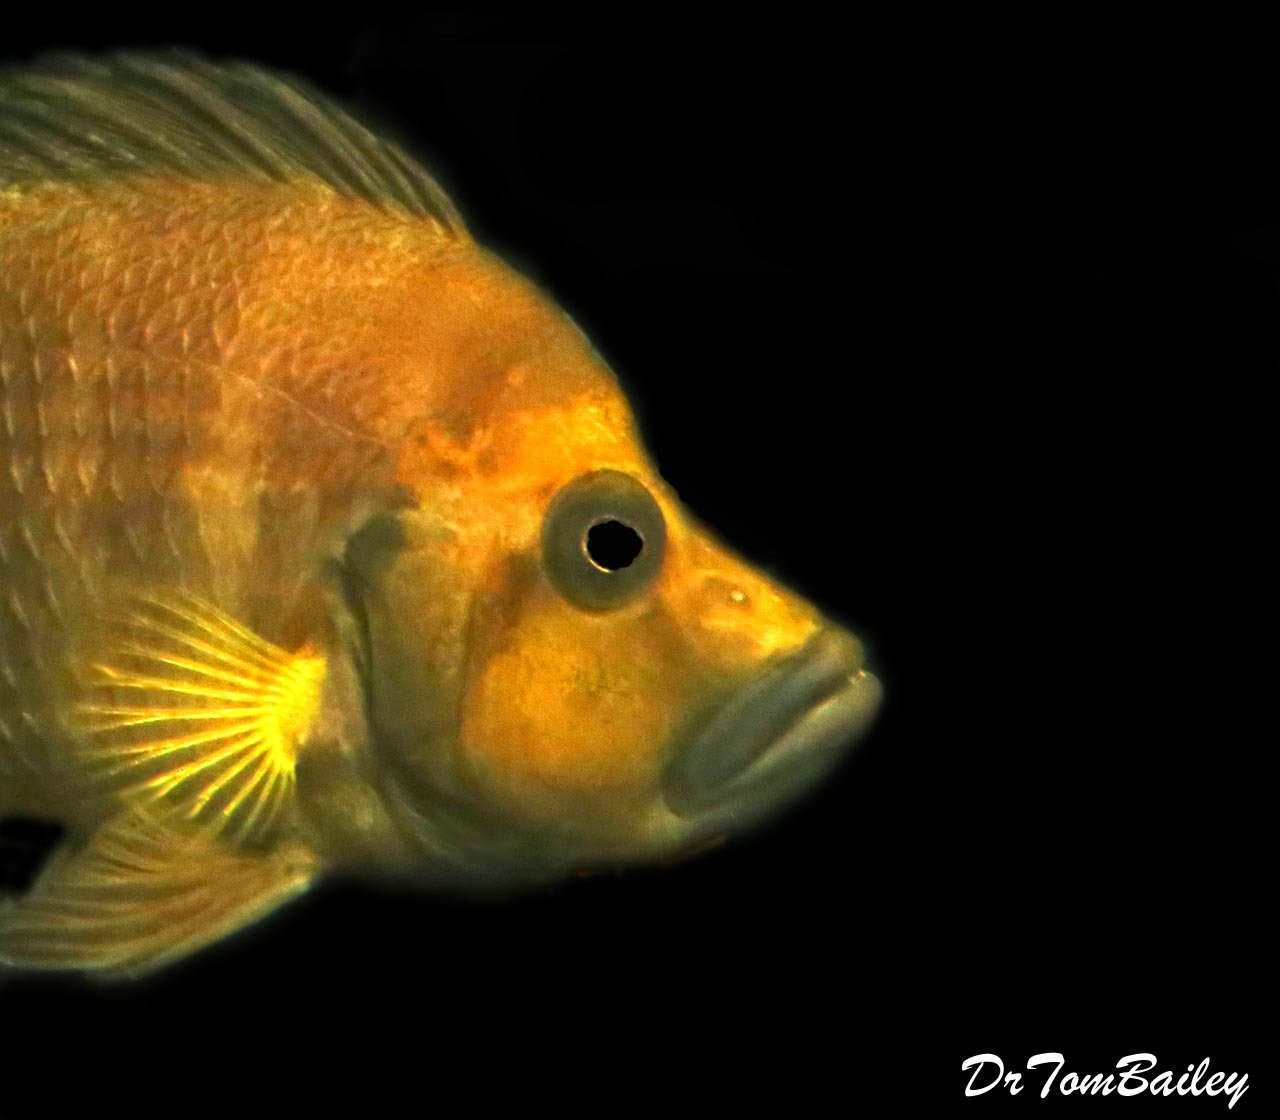 "Premium WYSIWYG, Rare, Wild, Lake Tanganyika Gold Head Altolamprologus Compressiceps Cichlid, 3"" to 4"" long"